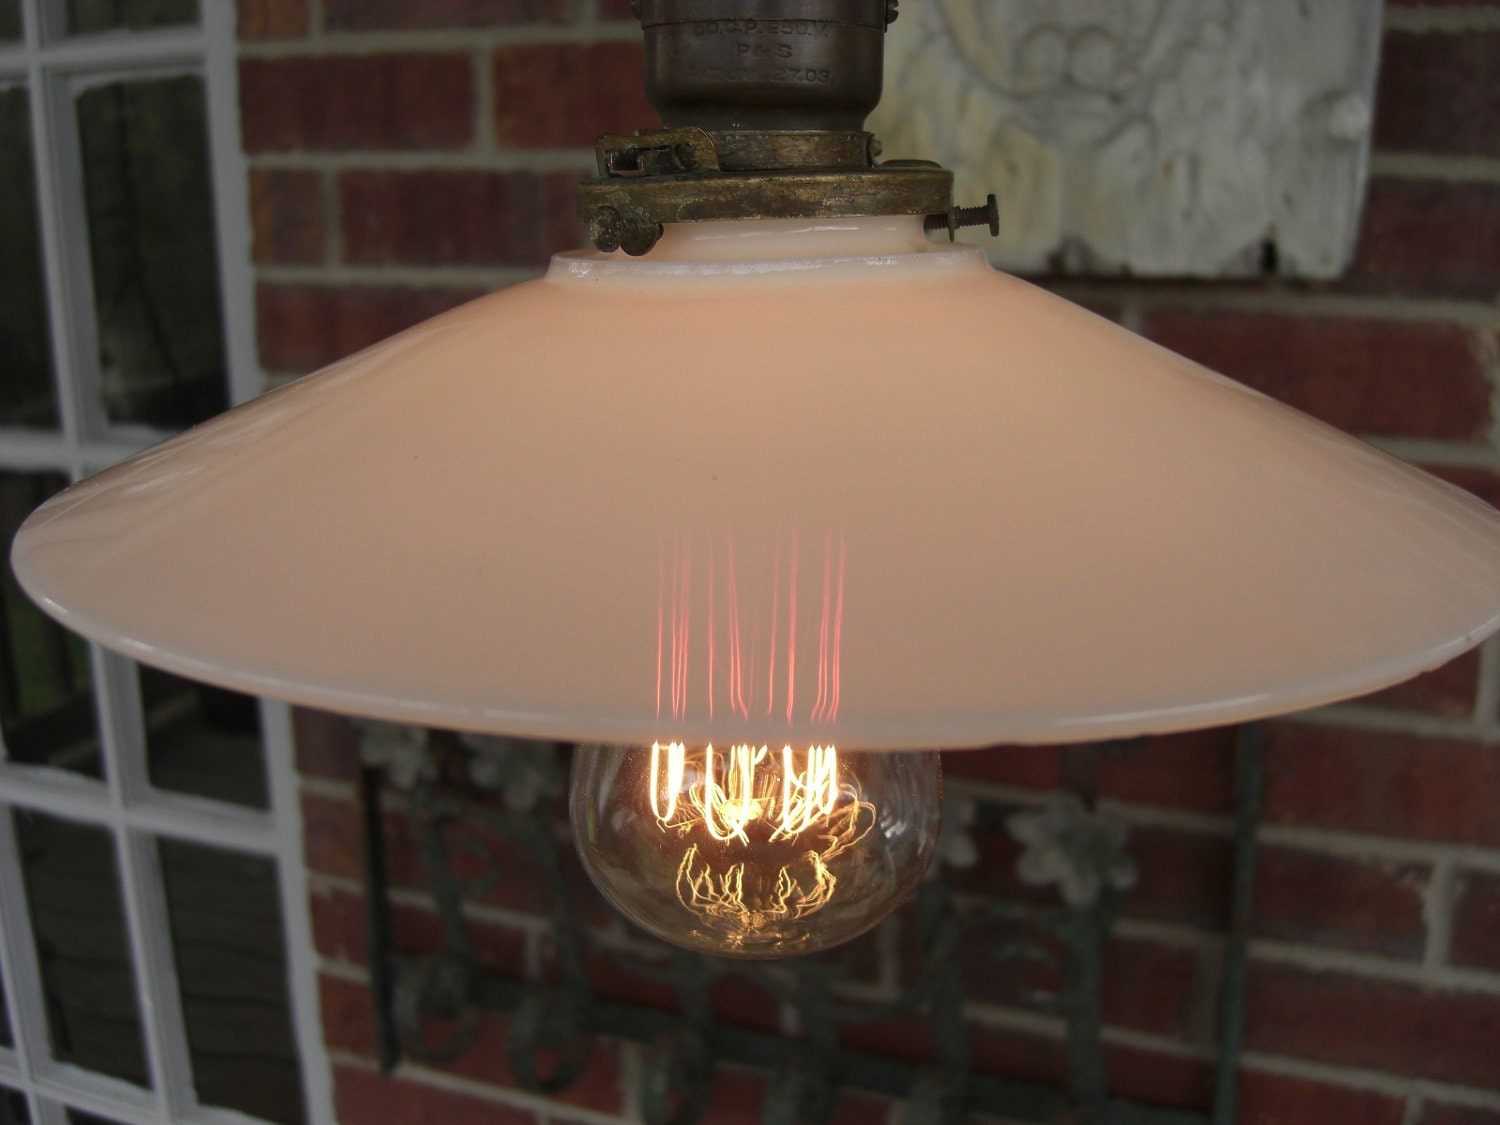 Lighting Industrial Antique Farm House Ceiling Light fixture